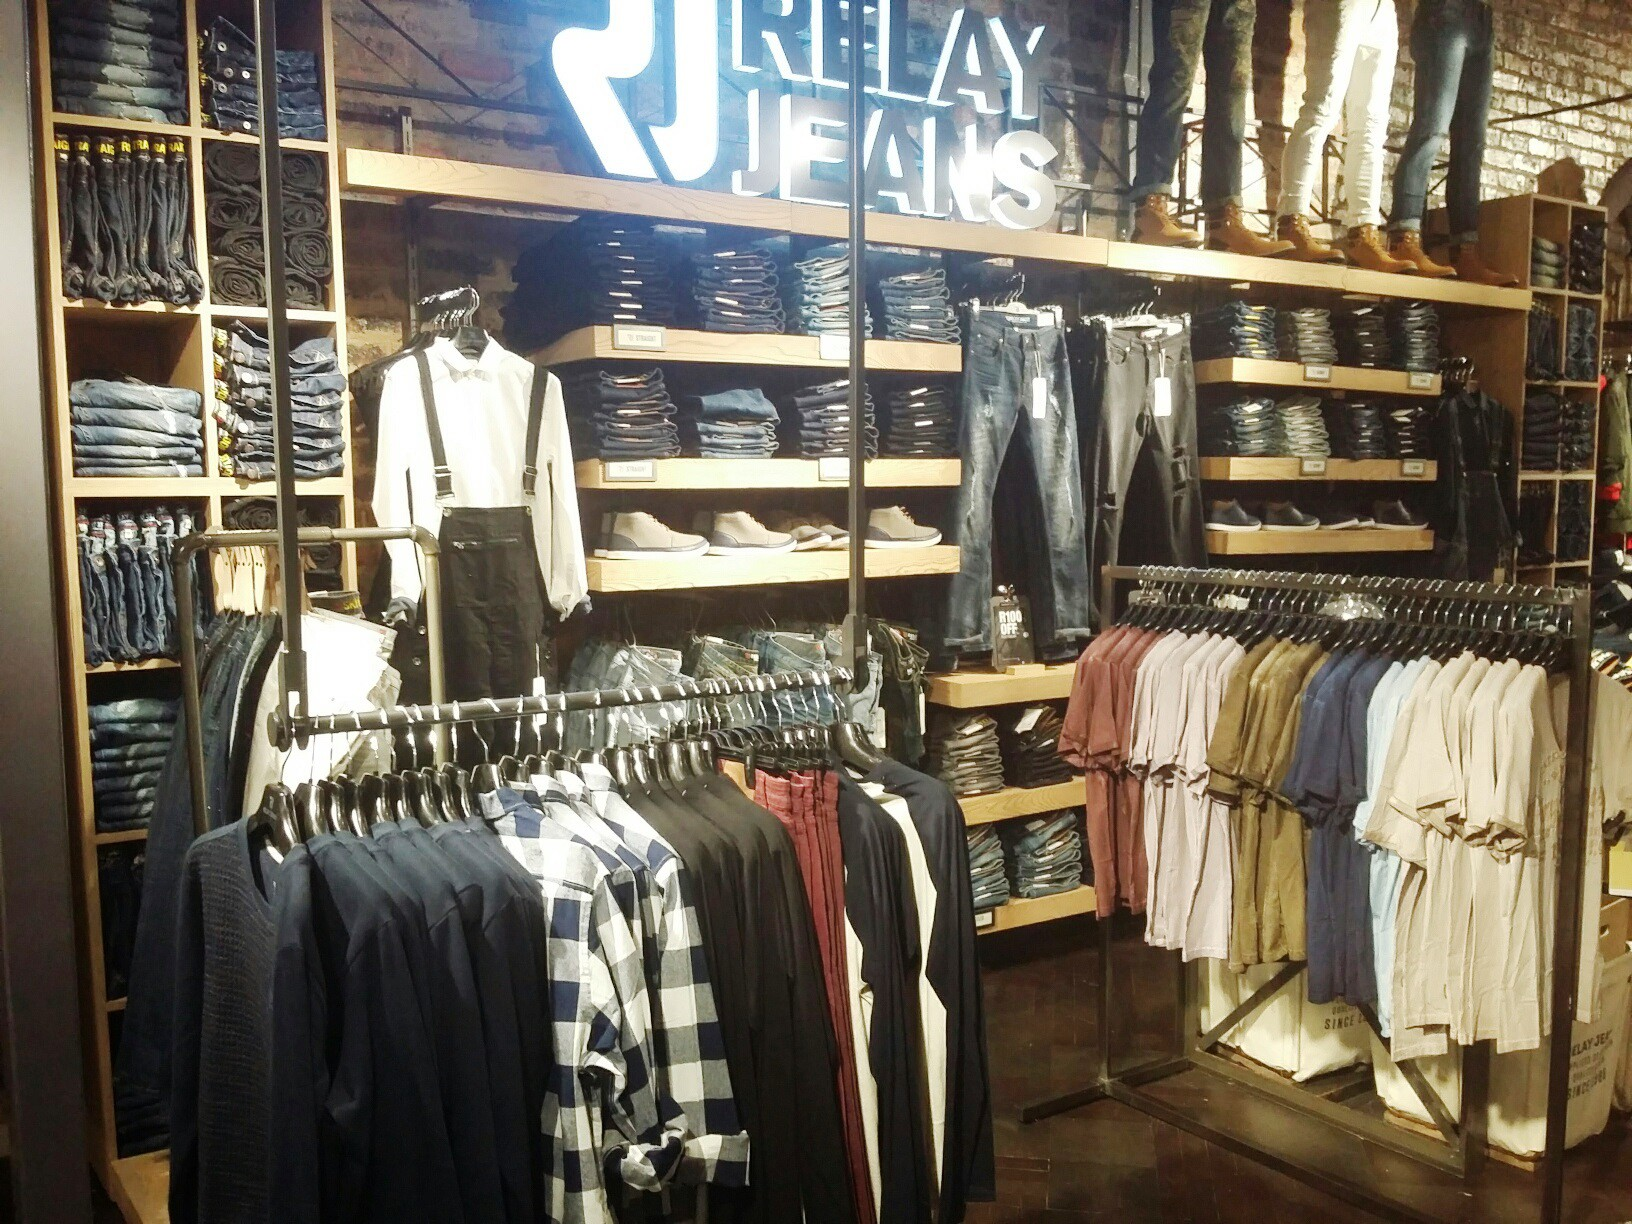 Relay Jeans